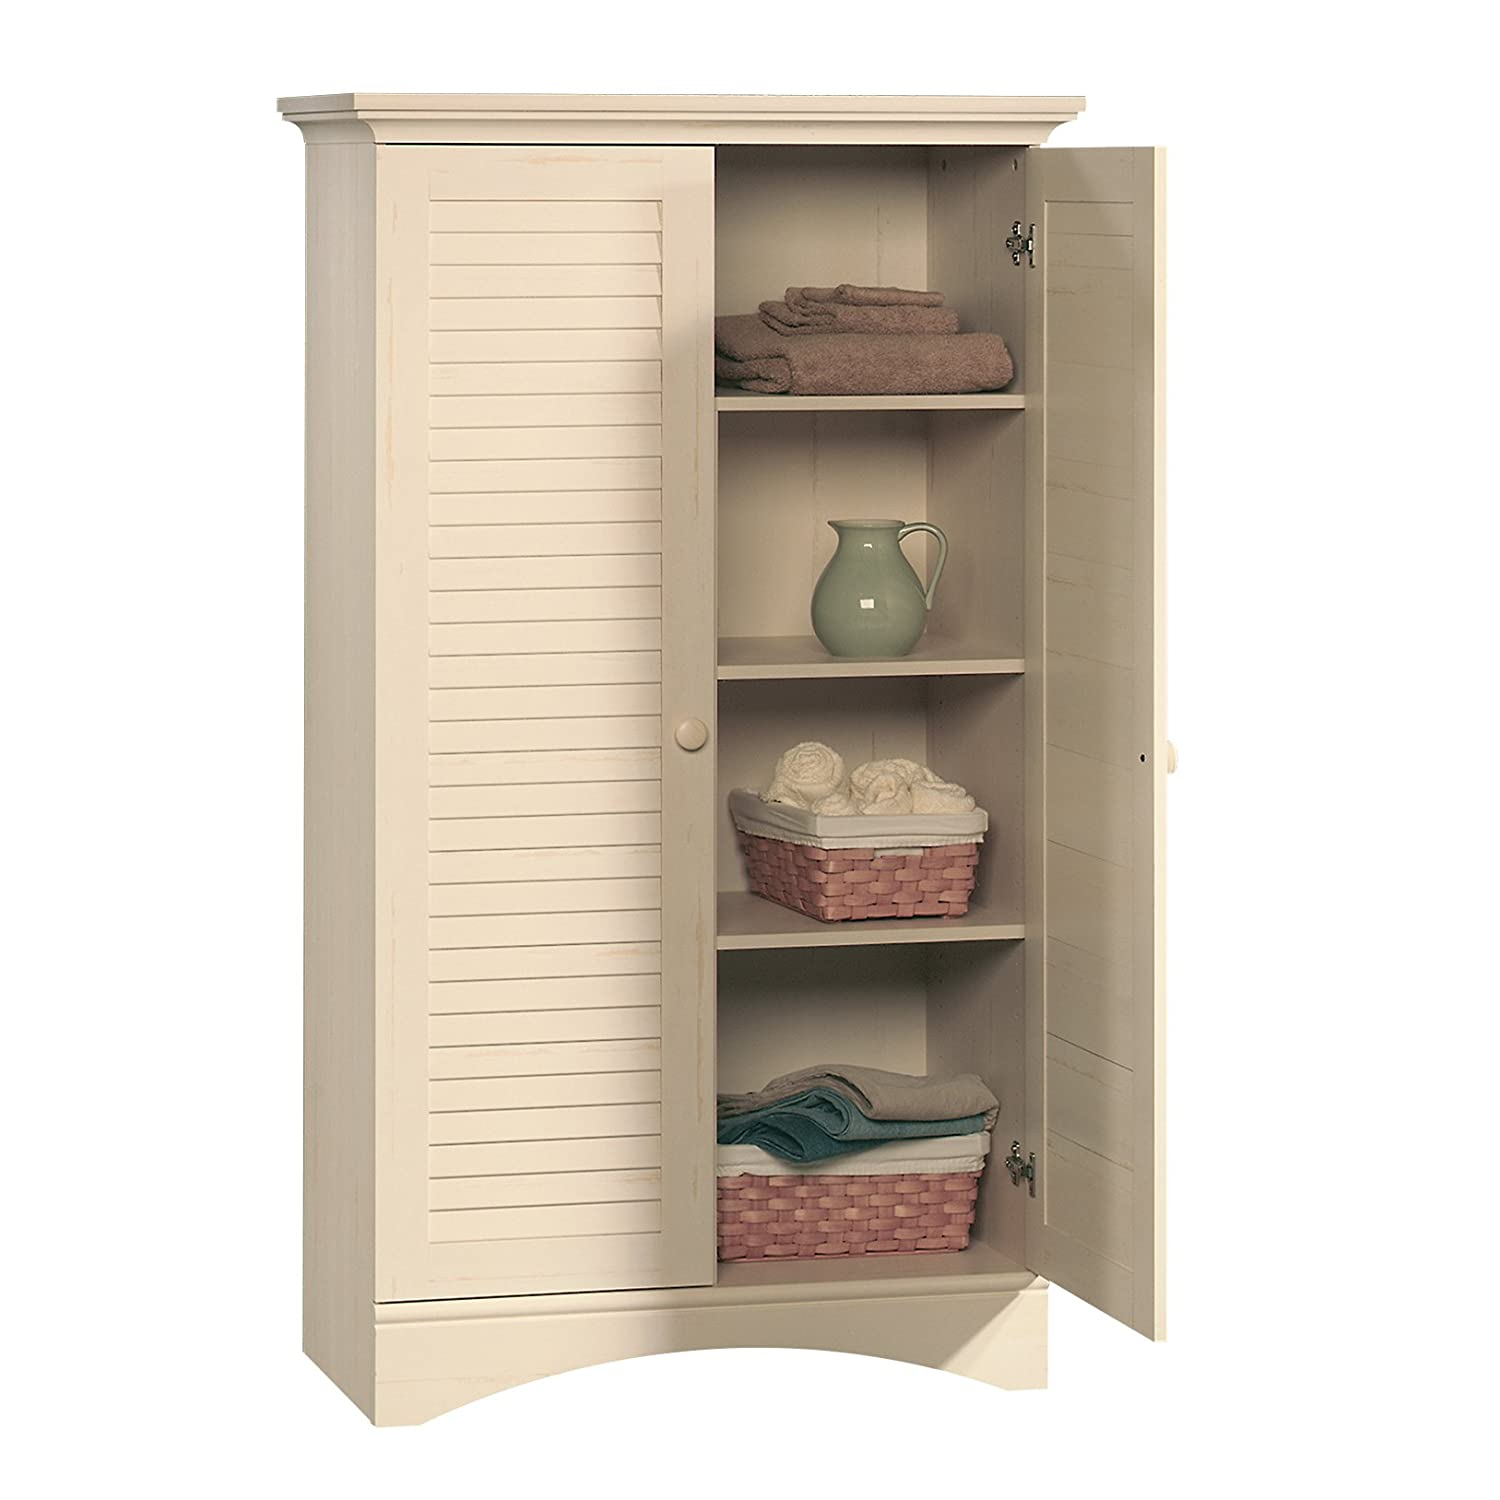 Sauder Kitchen Furniture Amazoncom Sauder Harbor View Storage Cabinet Antiqued White